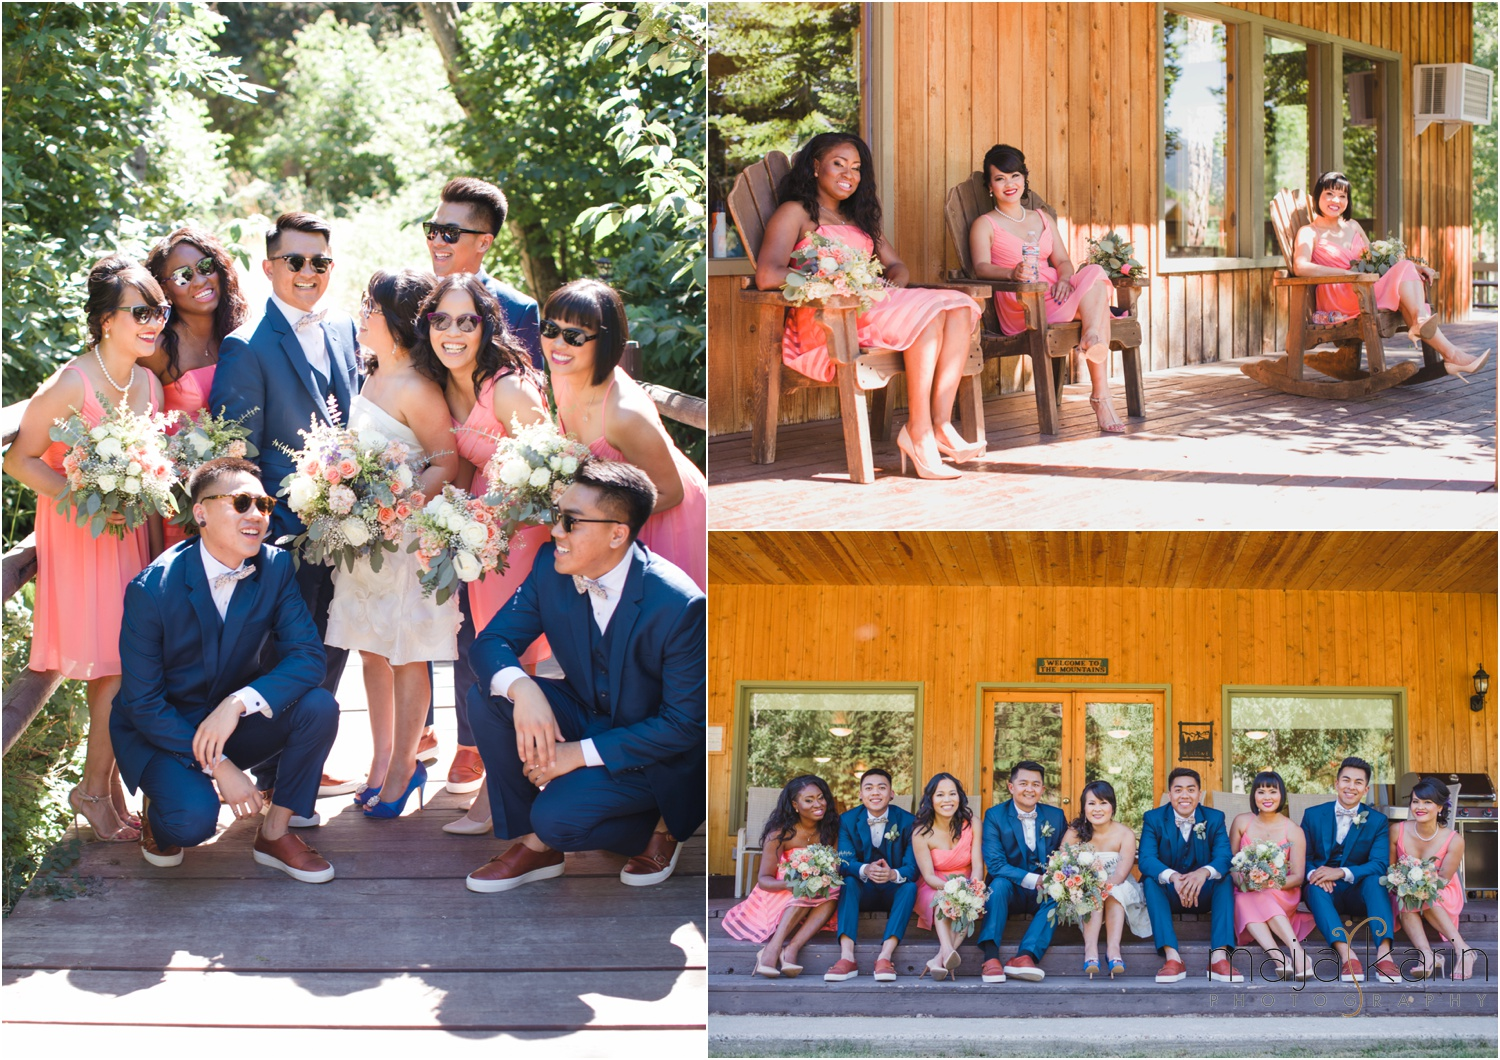 Mountain-Springs-Lodge-Leavenworth-Washington-Wedding-Photographer-Majiin-Karin-Photography_30.jpg